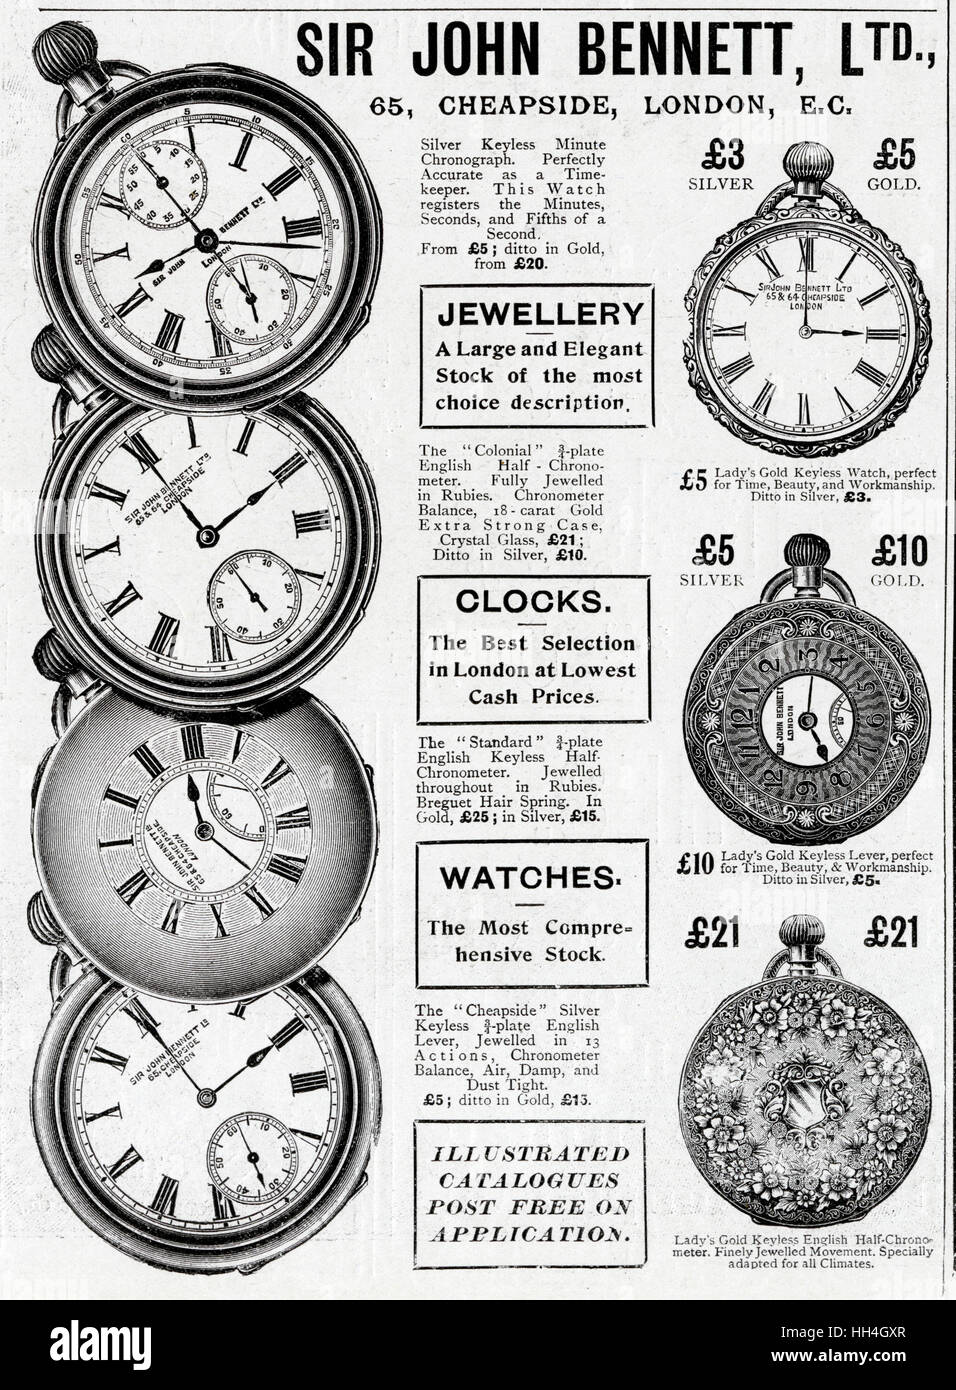 A selection of pocket watches, all available in Cheapside, London. - Stock Image